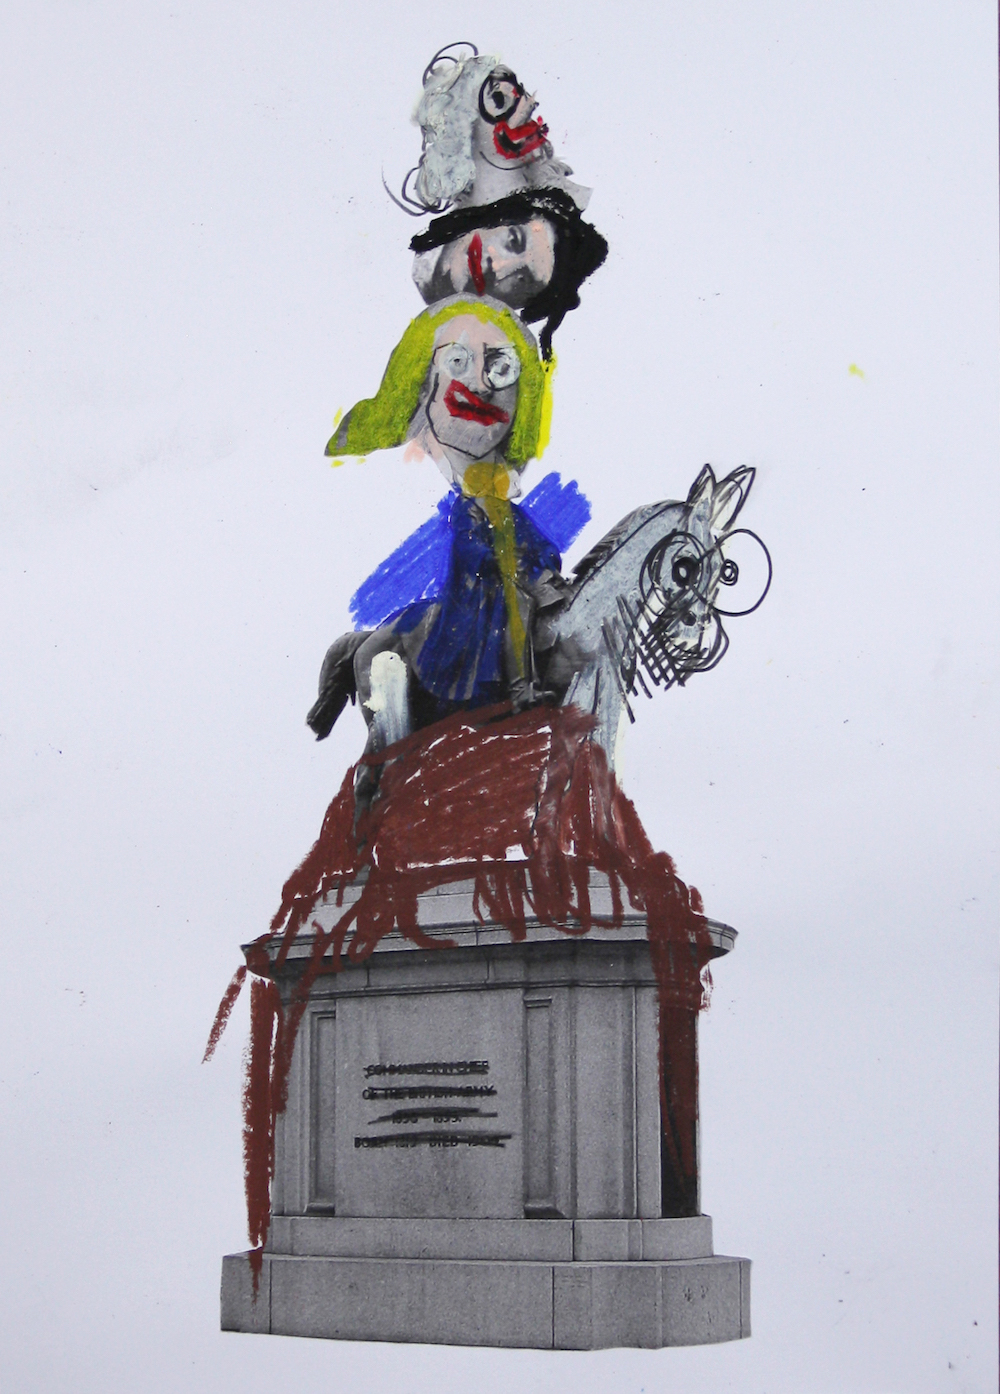 Jamie Fitzpatrick, Sketch for a Broken Monument 11, 2020. Photocopy, oil pastel and charcoal on paper. 42 x 29.5 cm.